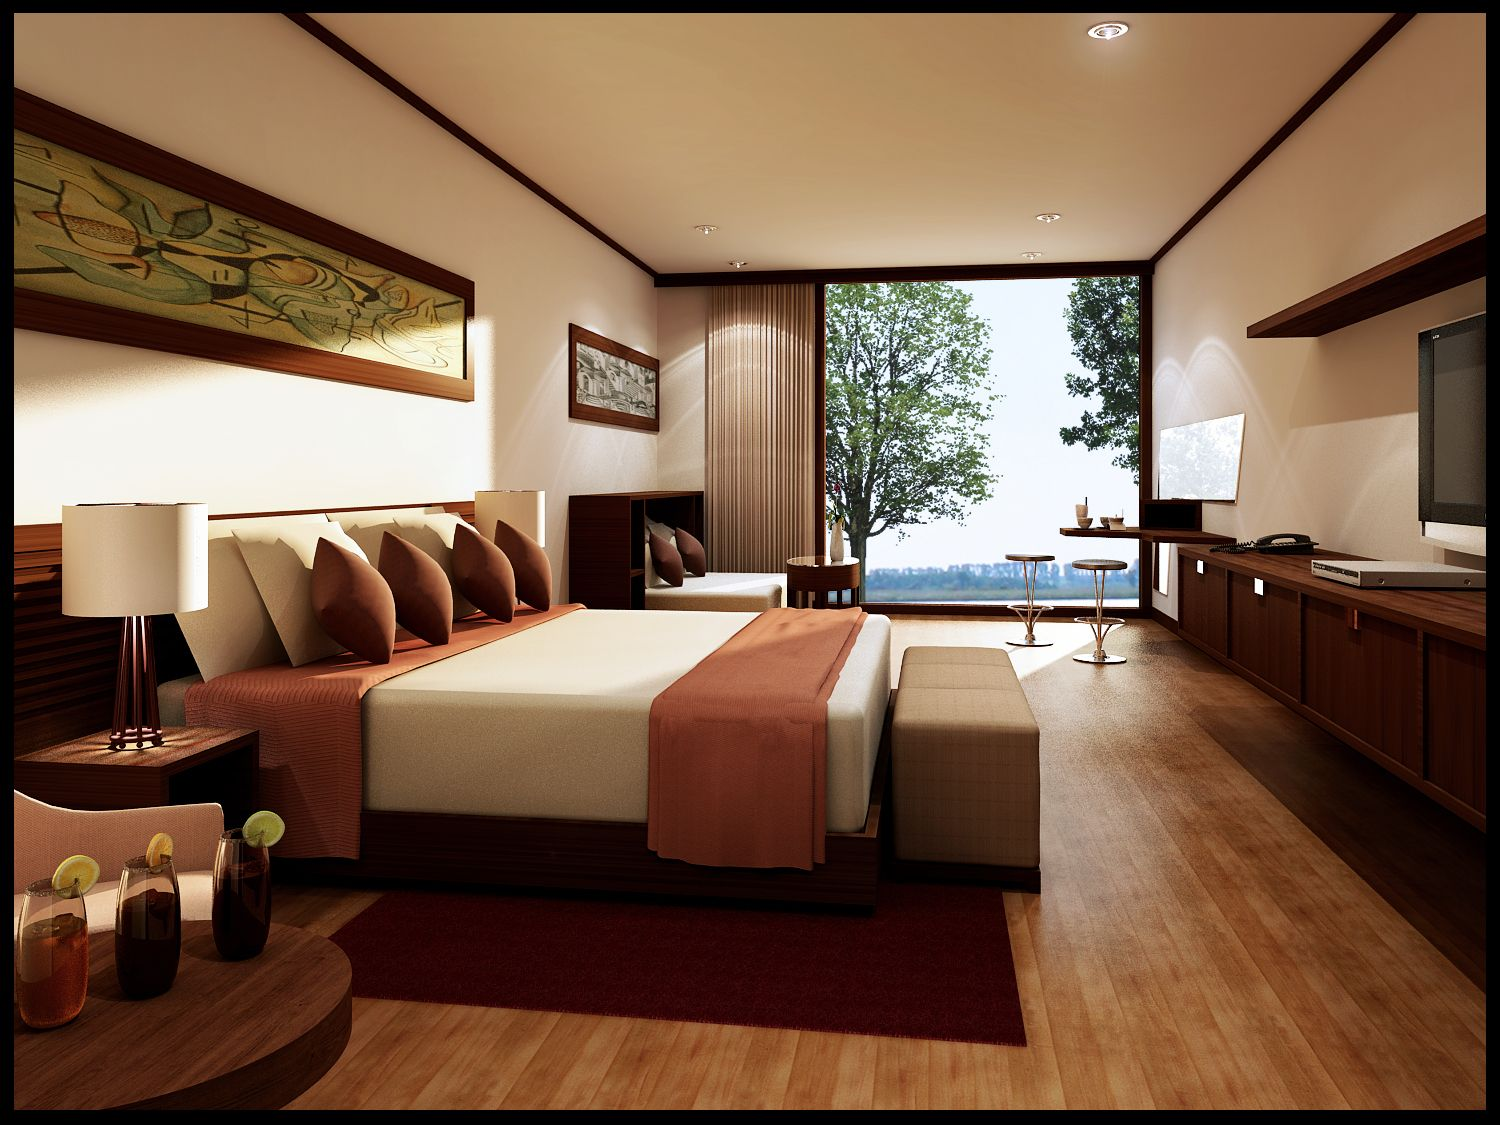 Lavish Modern Bedroom Ideas | Bedrooms, Contemporary and Bedroom ...